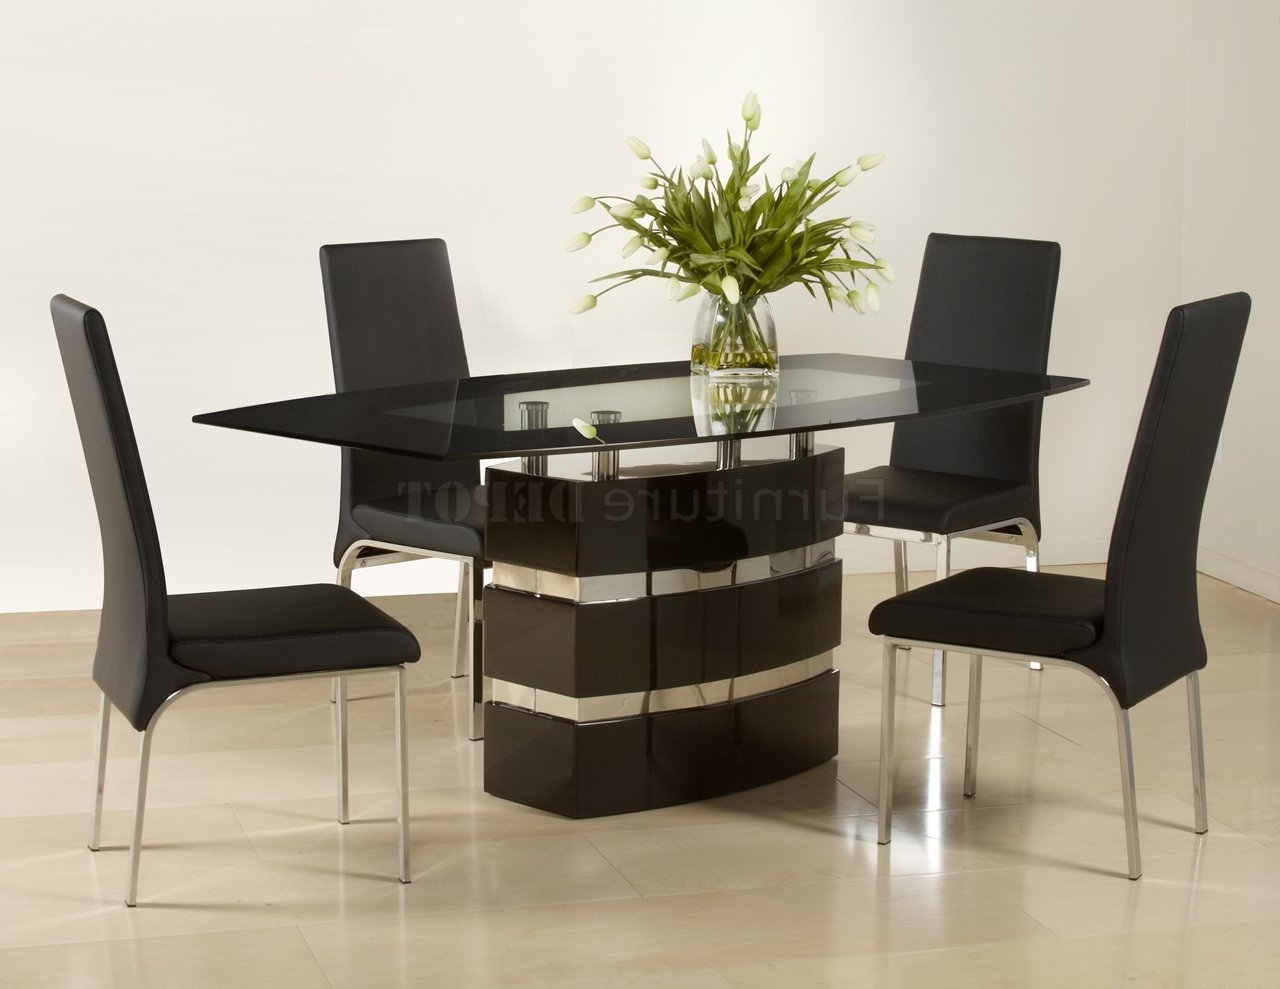 Popular Photos: Black High Gloss Finish Modern Dining Table Woptional Chairs Regarding Black High Gloss Dining Tables (Gallery 14 of 25)